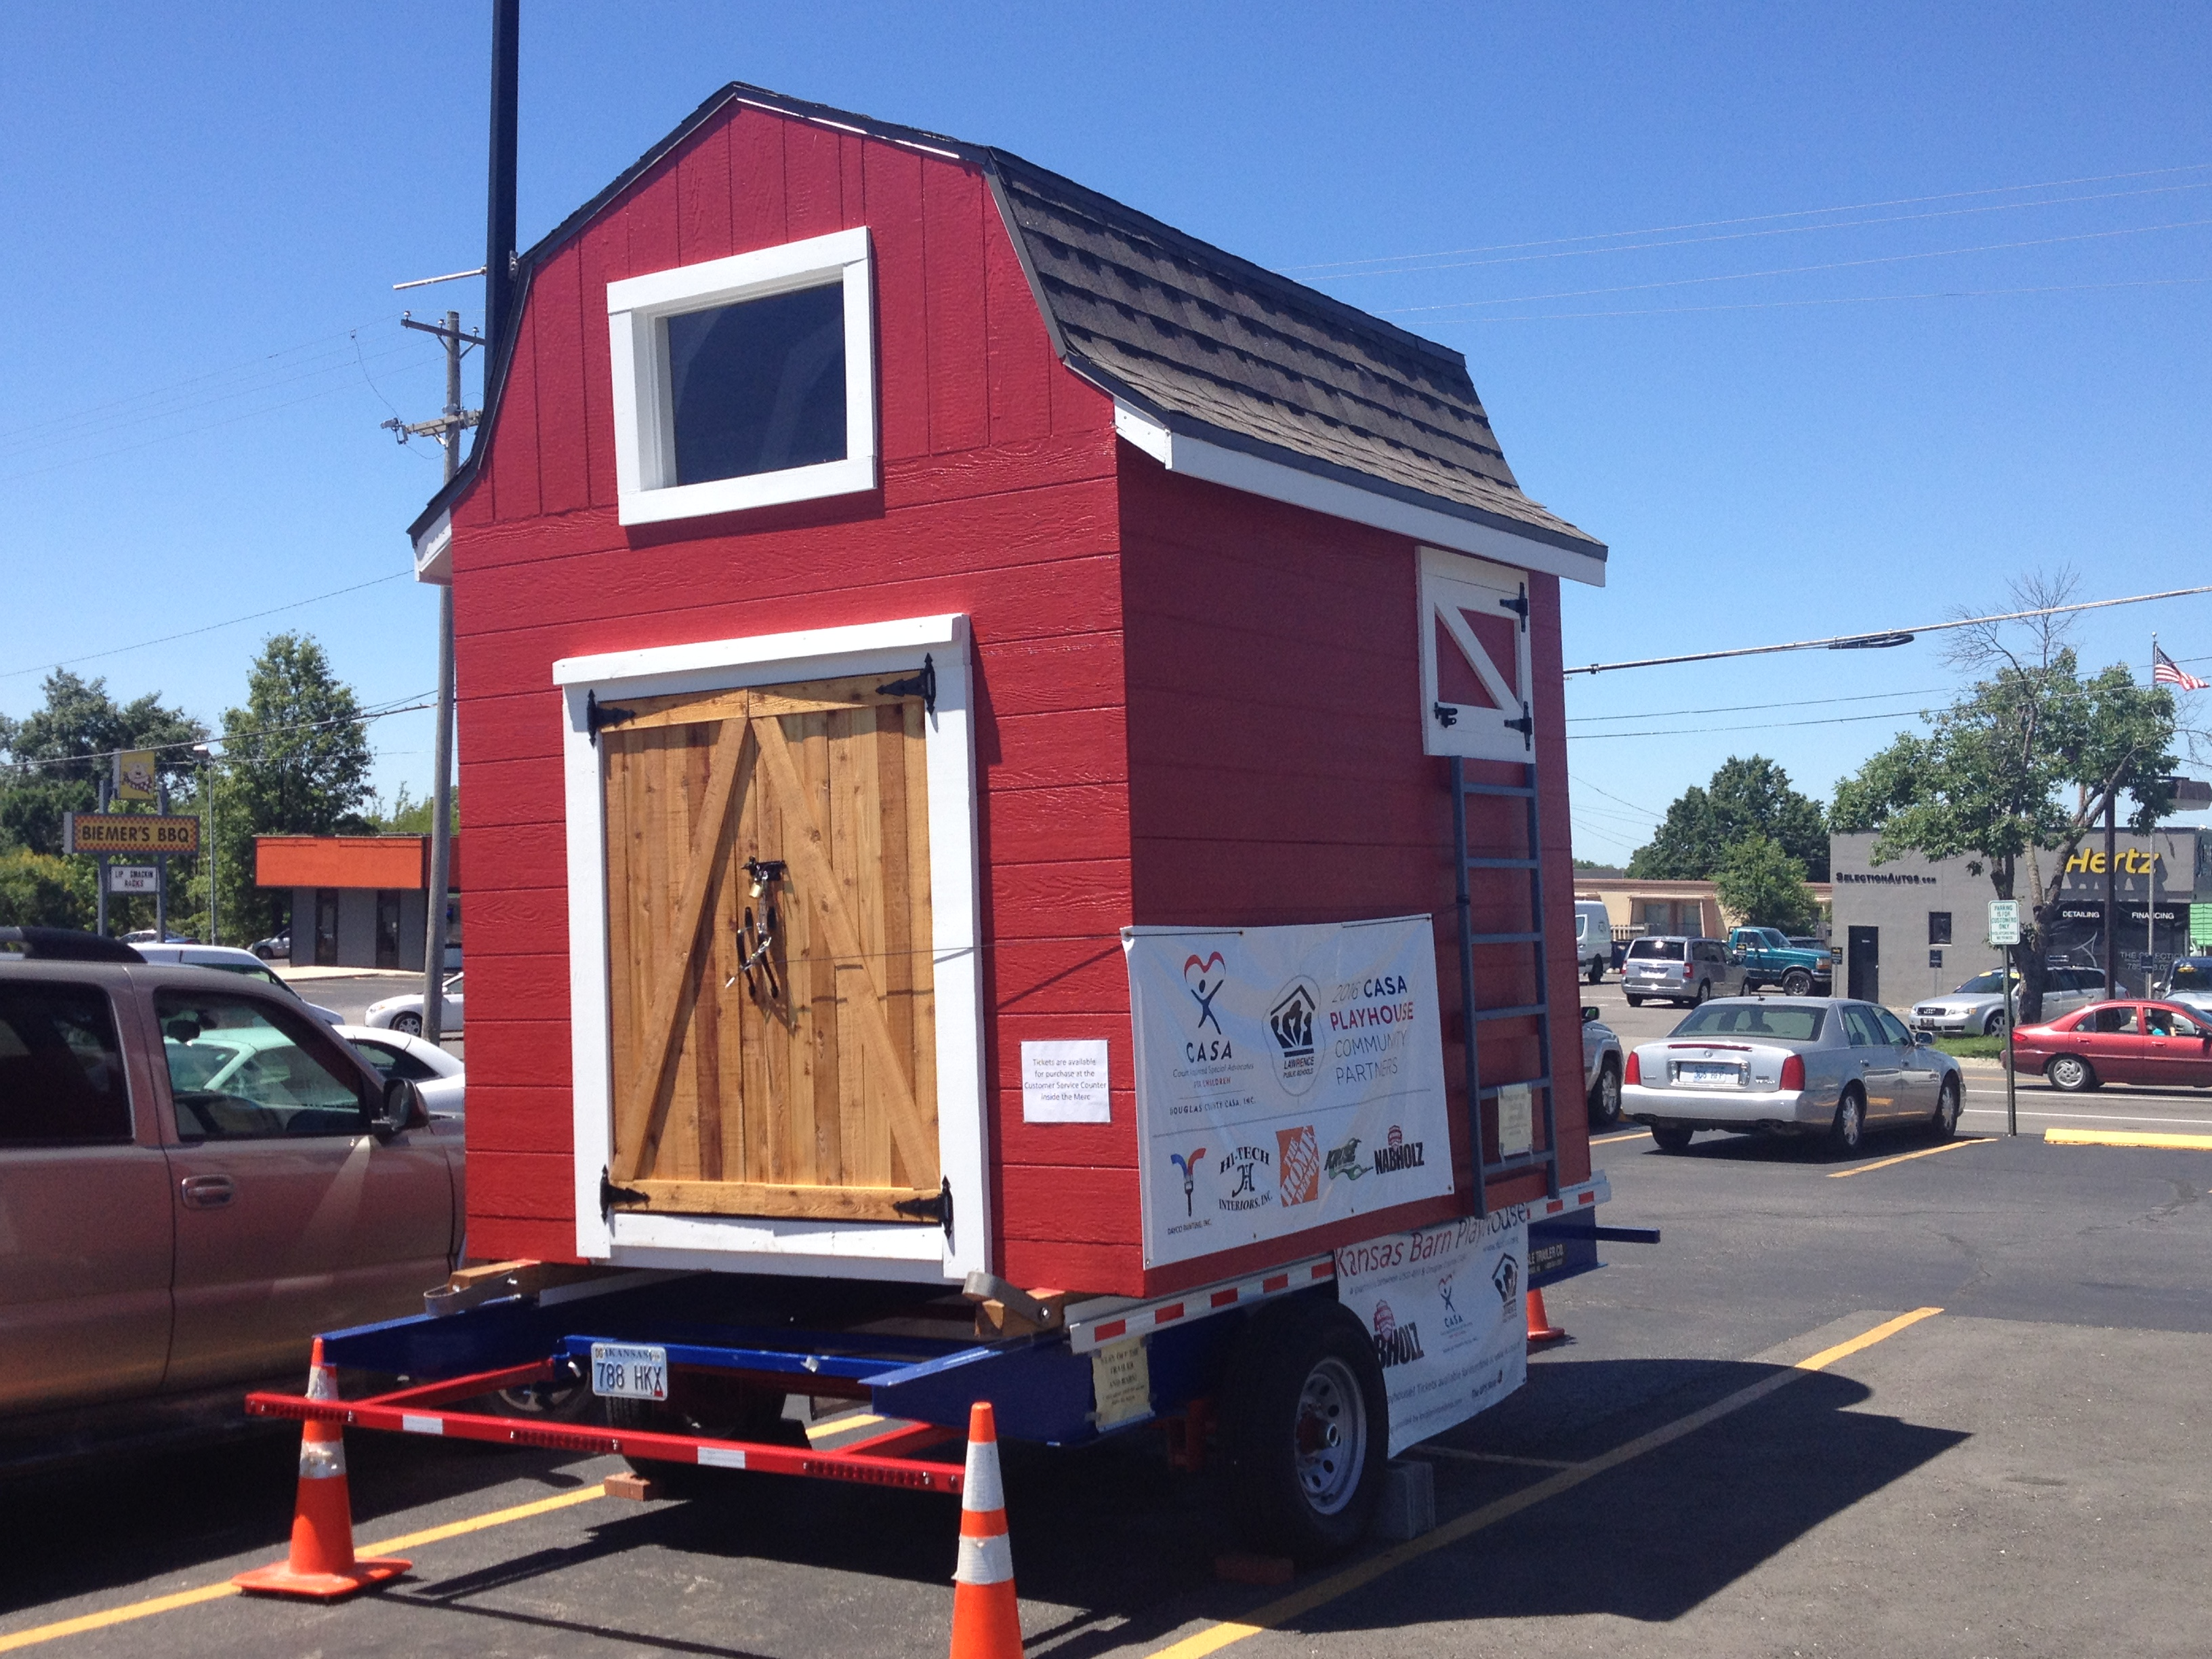 The 2016 Douglas County CASA playhouse is this cute barn, currently on display in the parking lot of The Merc (9th & Iowa) in Lawrence.  And you could win it with a single raffle ticket. (Photo by J. Schafer)